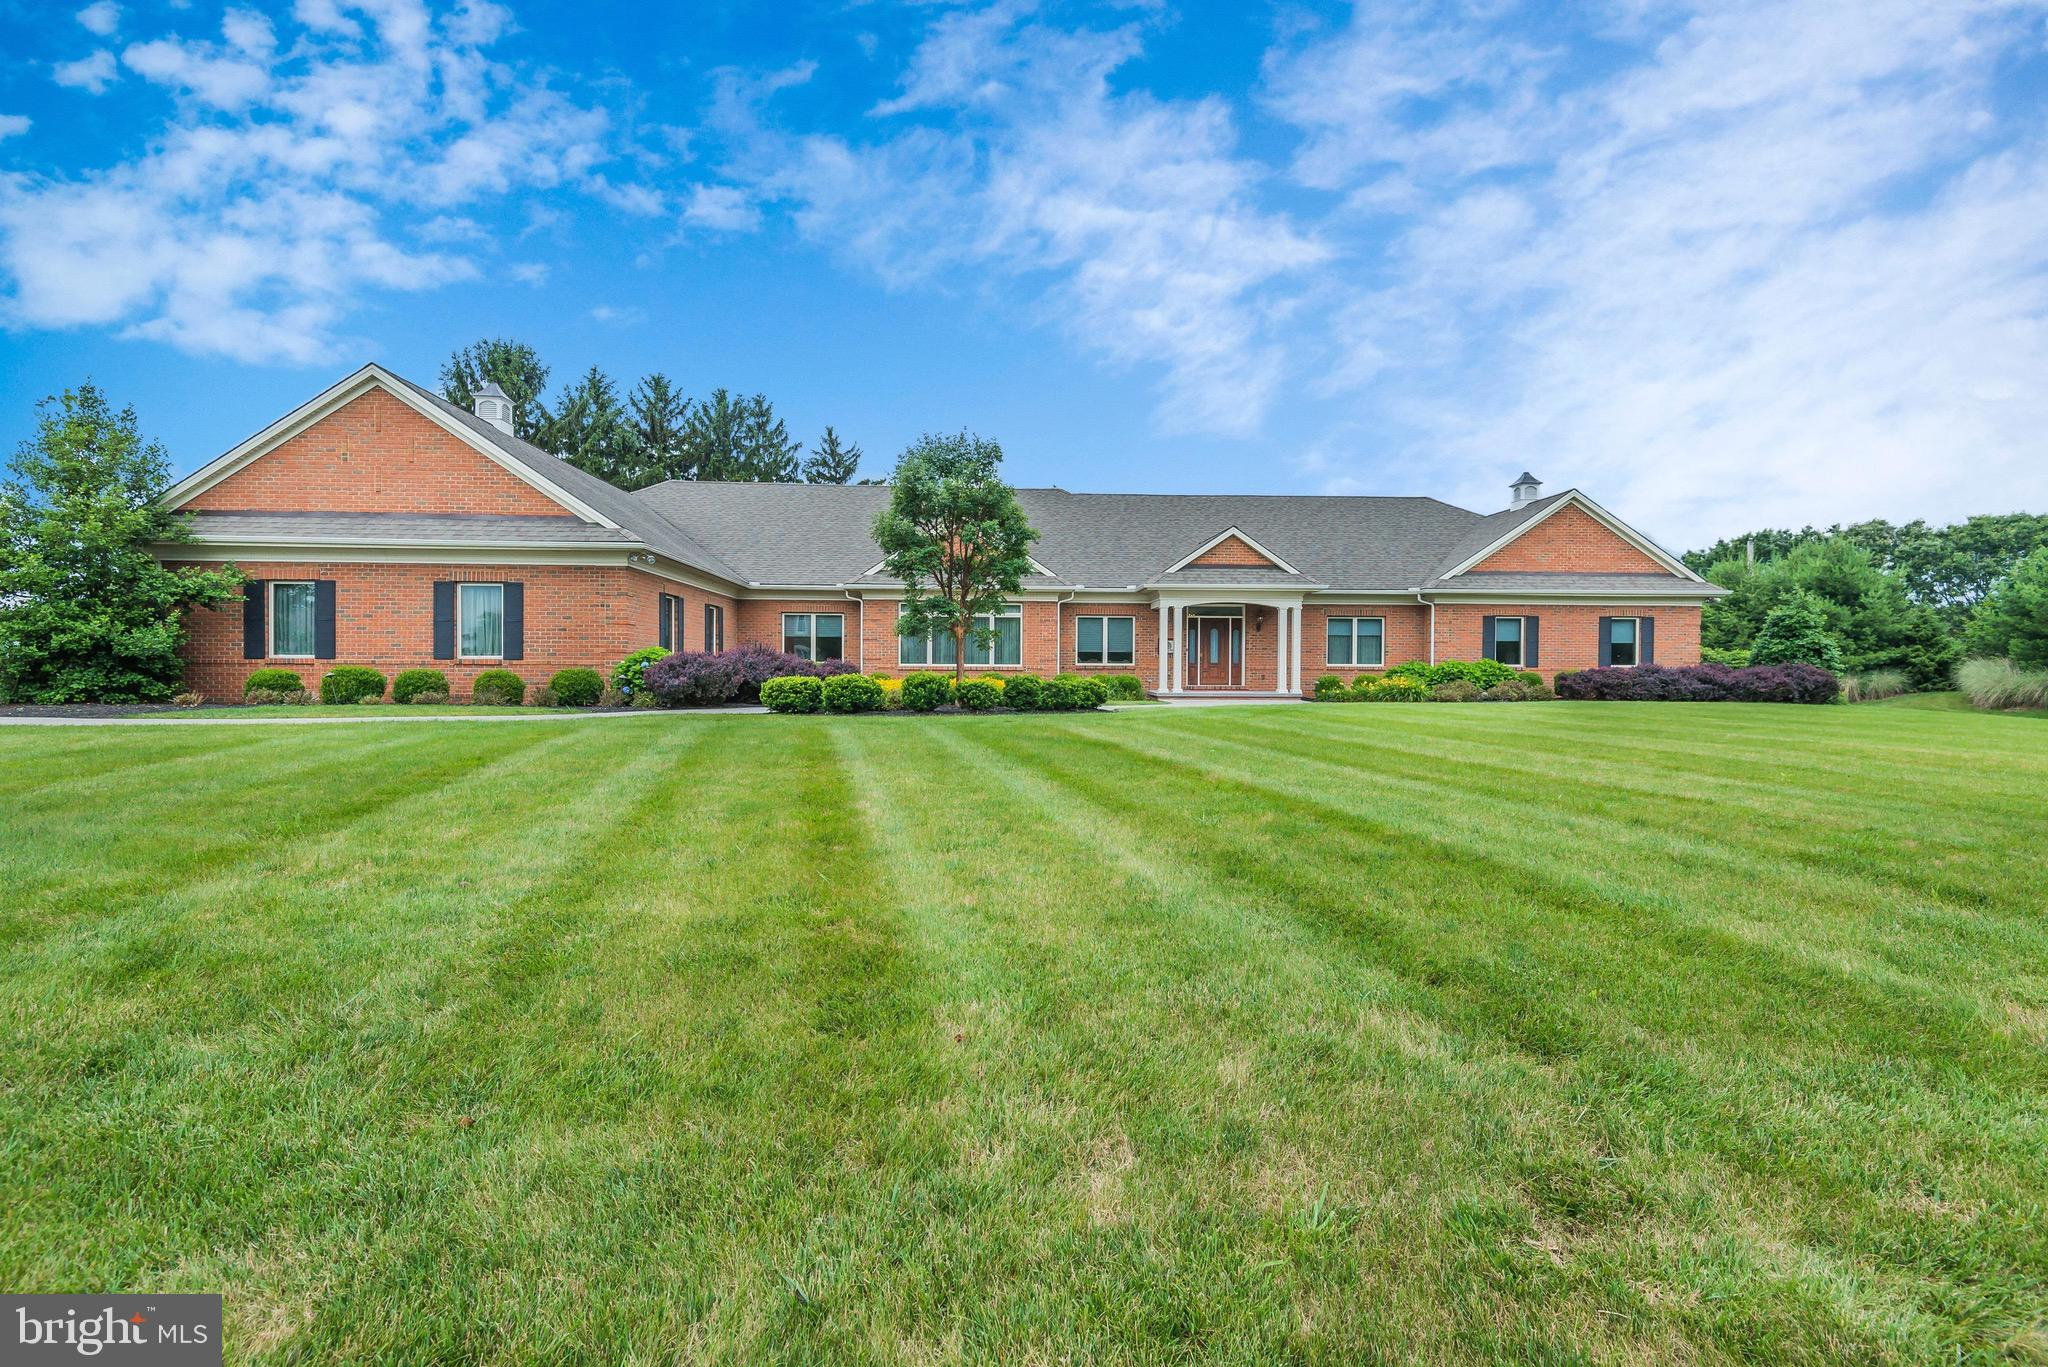 7050 CREEK CROSSING DRIVE, HARRISBURG, PA 17111